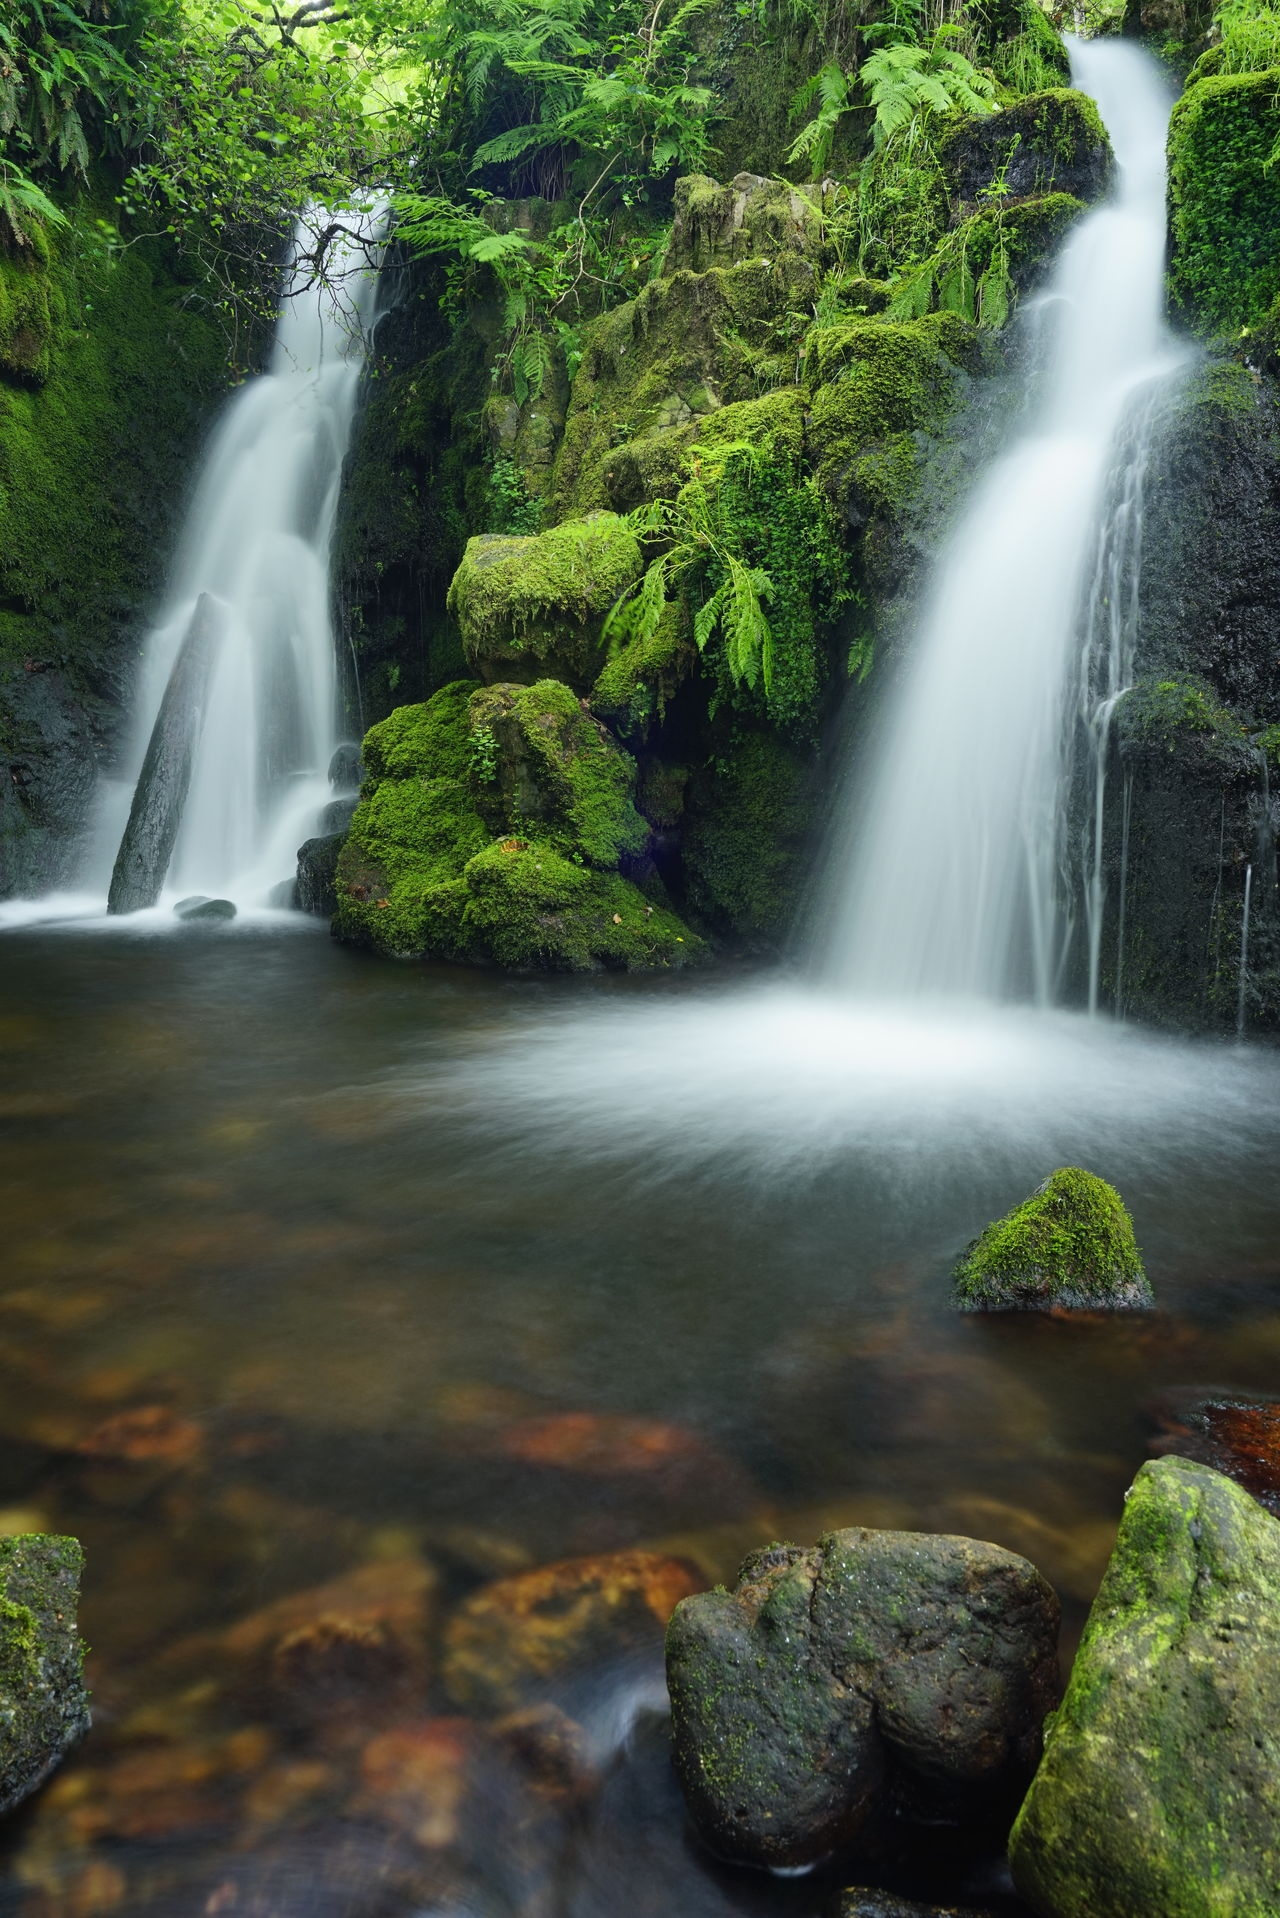 Waterfall Water Motion Long Exposure Beauty In Nature Outdoors Scenics Nature No People Green Color Beauty Spraying Day Power In Nature Freshness Tree Rocks